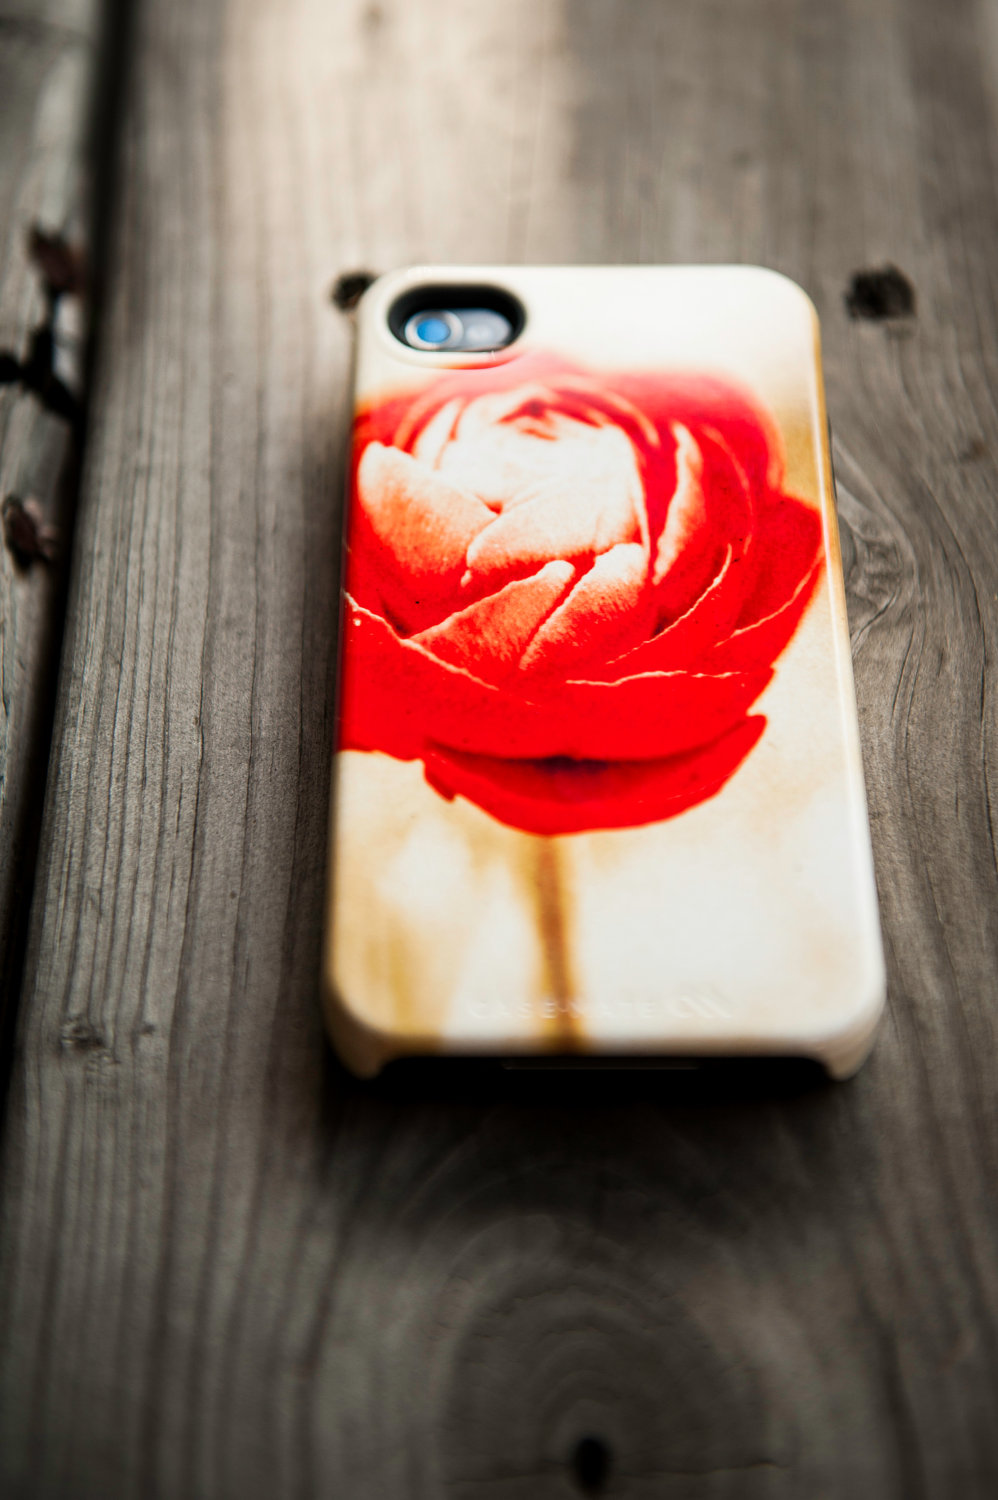 Favorite-iphone-cases-for-brides-modern-tech-weddings-4-ruby-rose.original